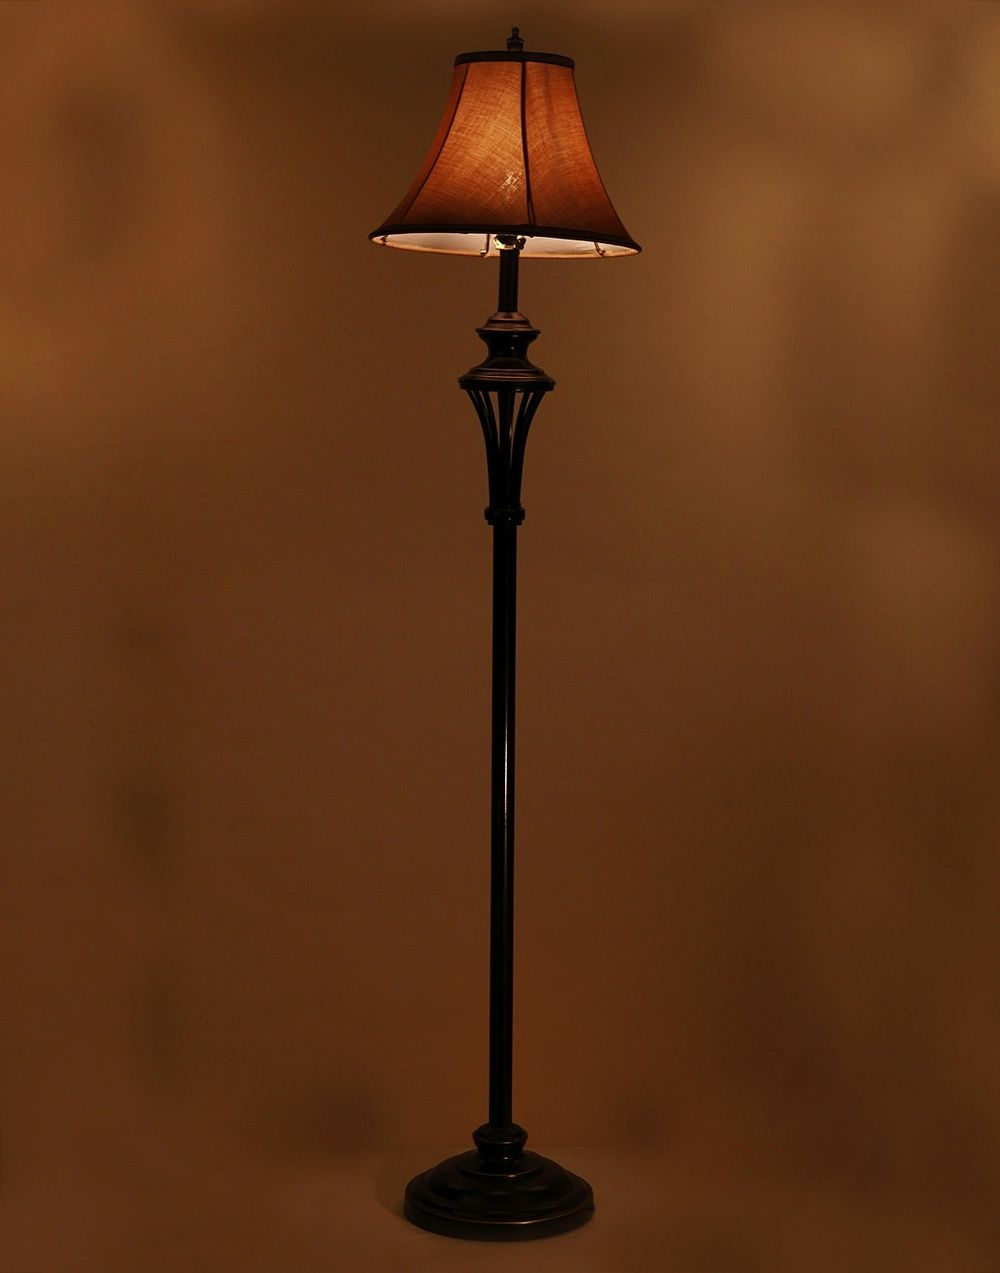 Aesthetichs Antique Floor Lamp With Brown Cloth Lamp Shade Antique Floor Lamps Lamp Floor Lamp